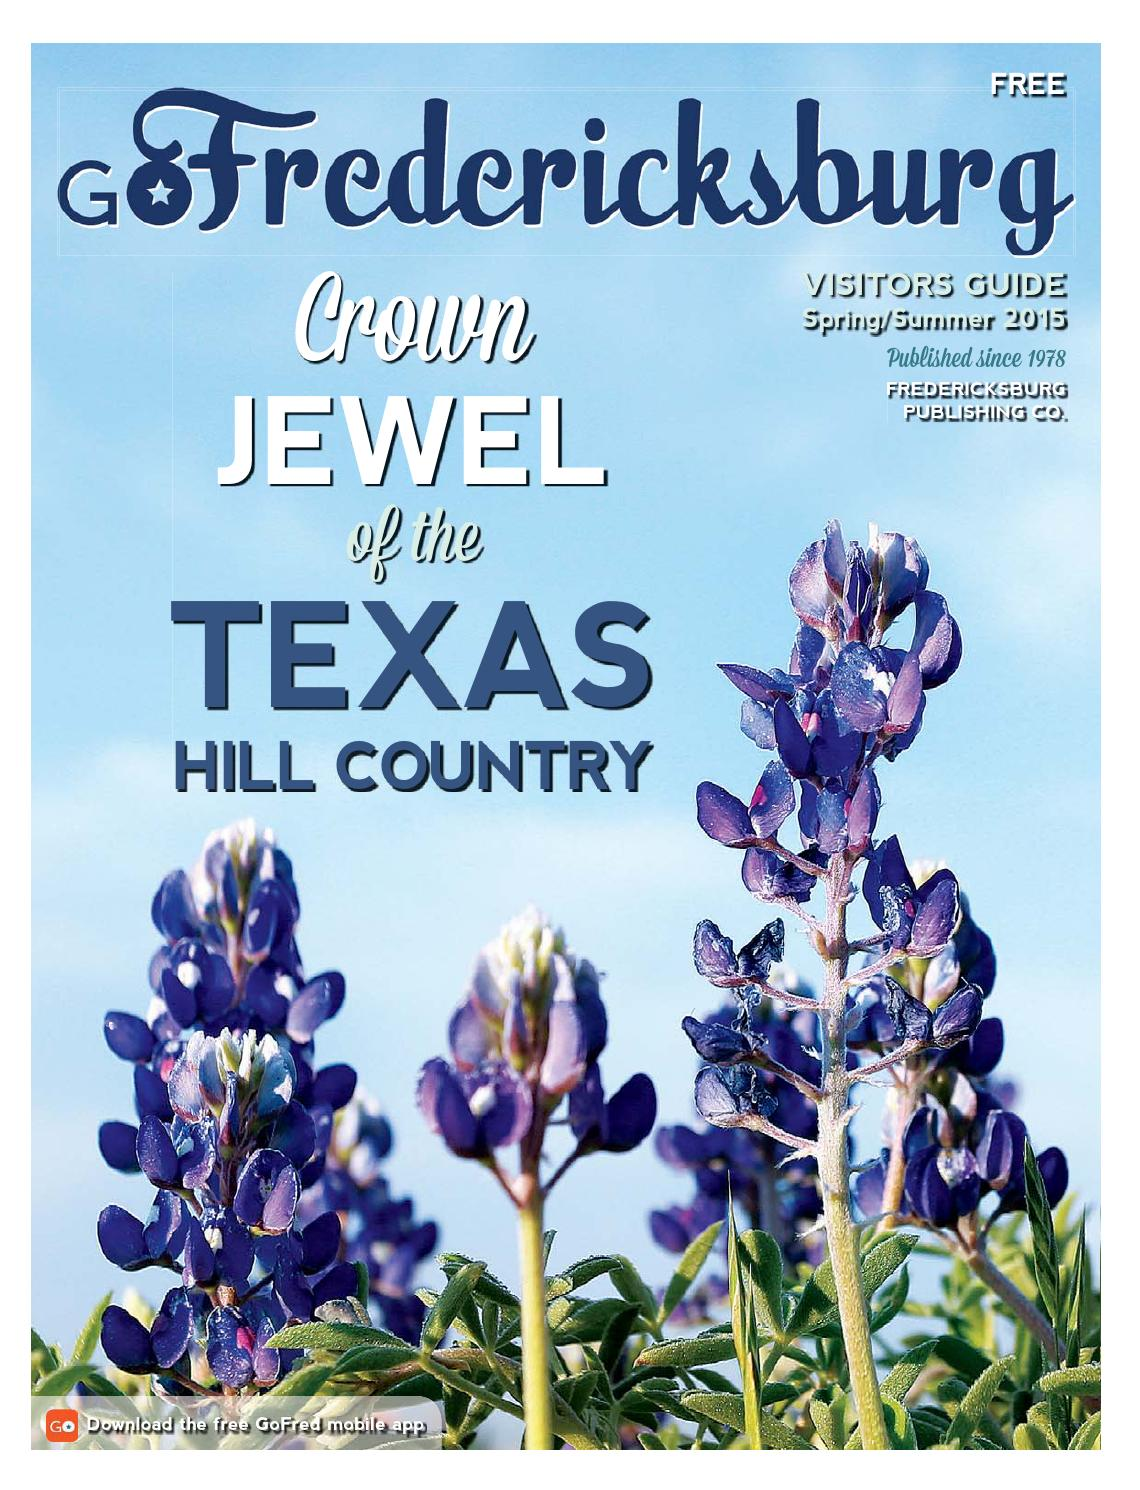 Go Fredericksburg Visitors Guide by Digital Publisher - issuu